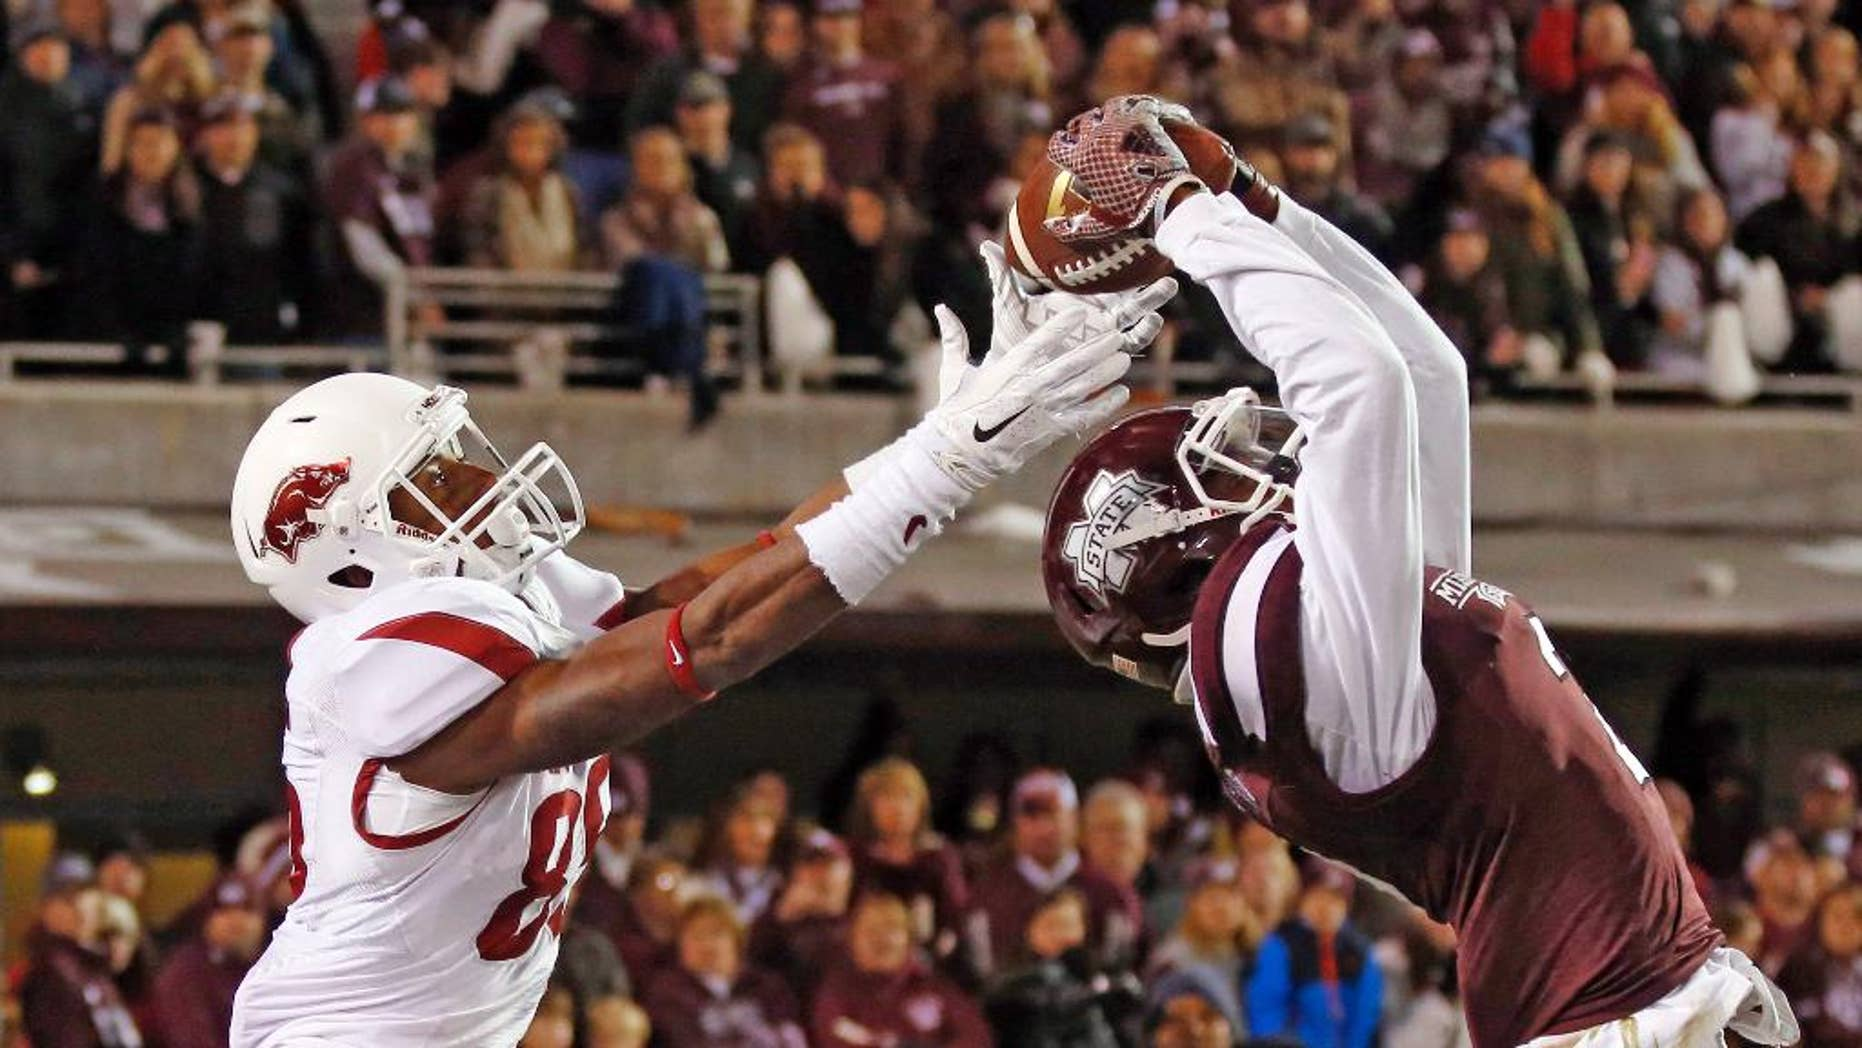 Mississippi State defensive back Will Redmond (2) reaches to intercept a pass intended for Arkansas wide receiver Demetrius Wilson (85) in the end zone in the final seconds of the second half of an NCAA college football game in Starkville, Miss., Saturday, Nov. 1, 2014. No. 1 Mississippi State won 17-10. (AP Photo/Rogelio V. Solis)